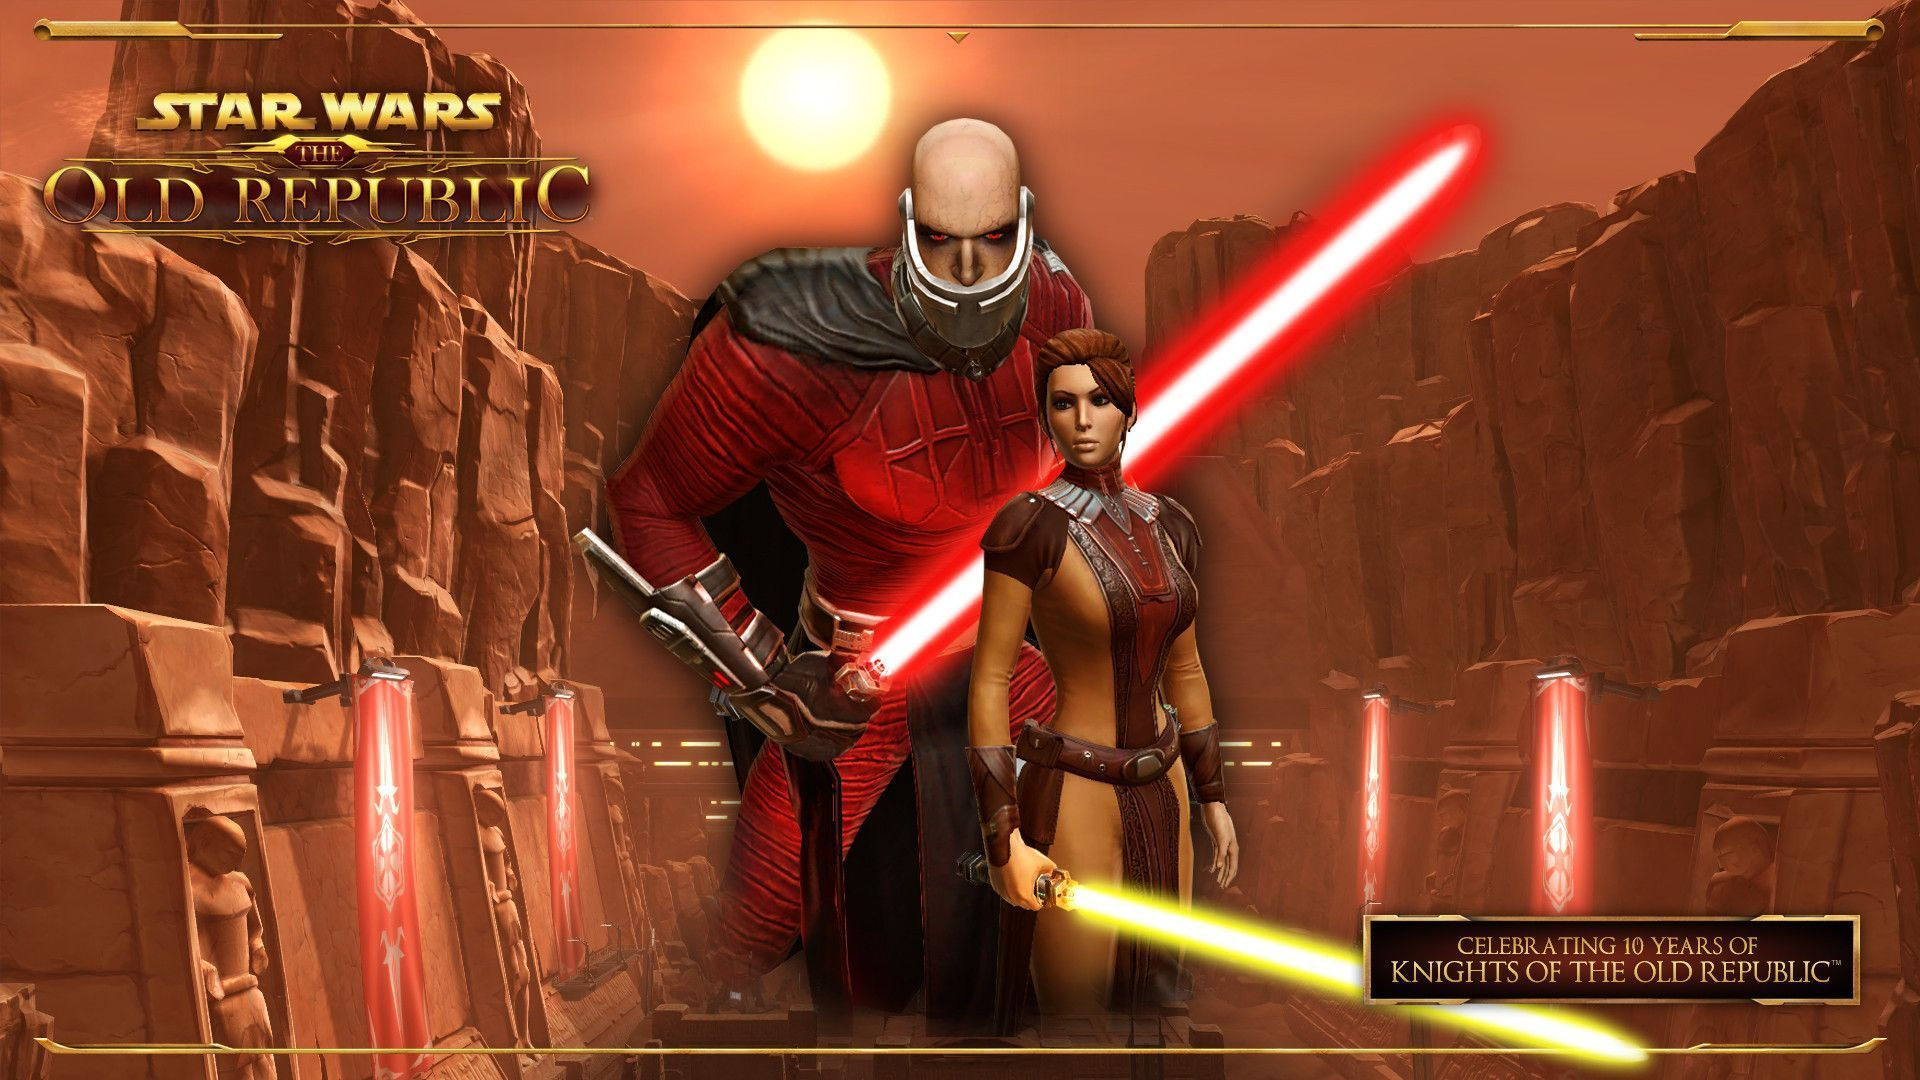 Star Wars The Old Republic , HD Wallpaper & Backgrounds